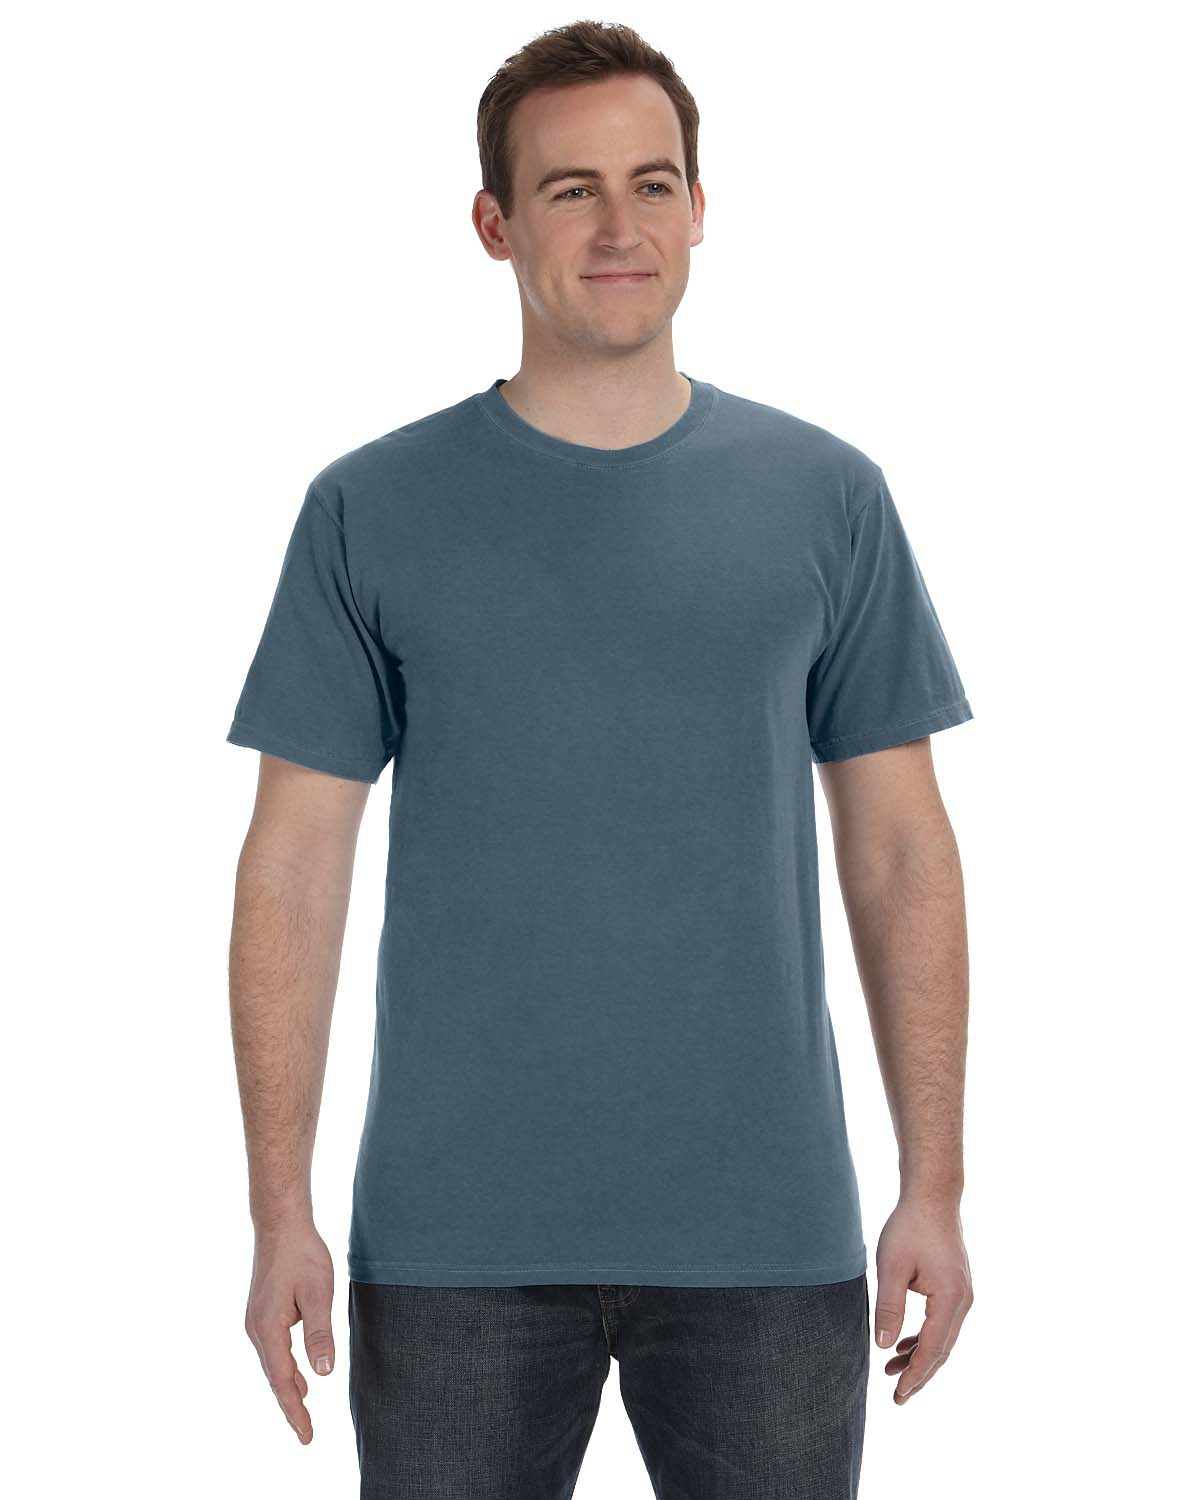 Authentic Pigment 1969 - 5.6 oz. Pigment-Dyed & Direct-Dyed Ringspun T-Shirt